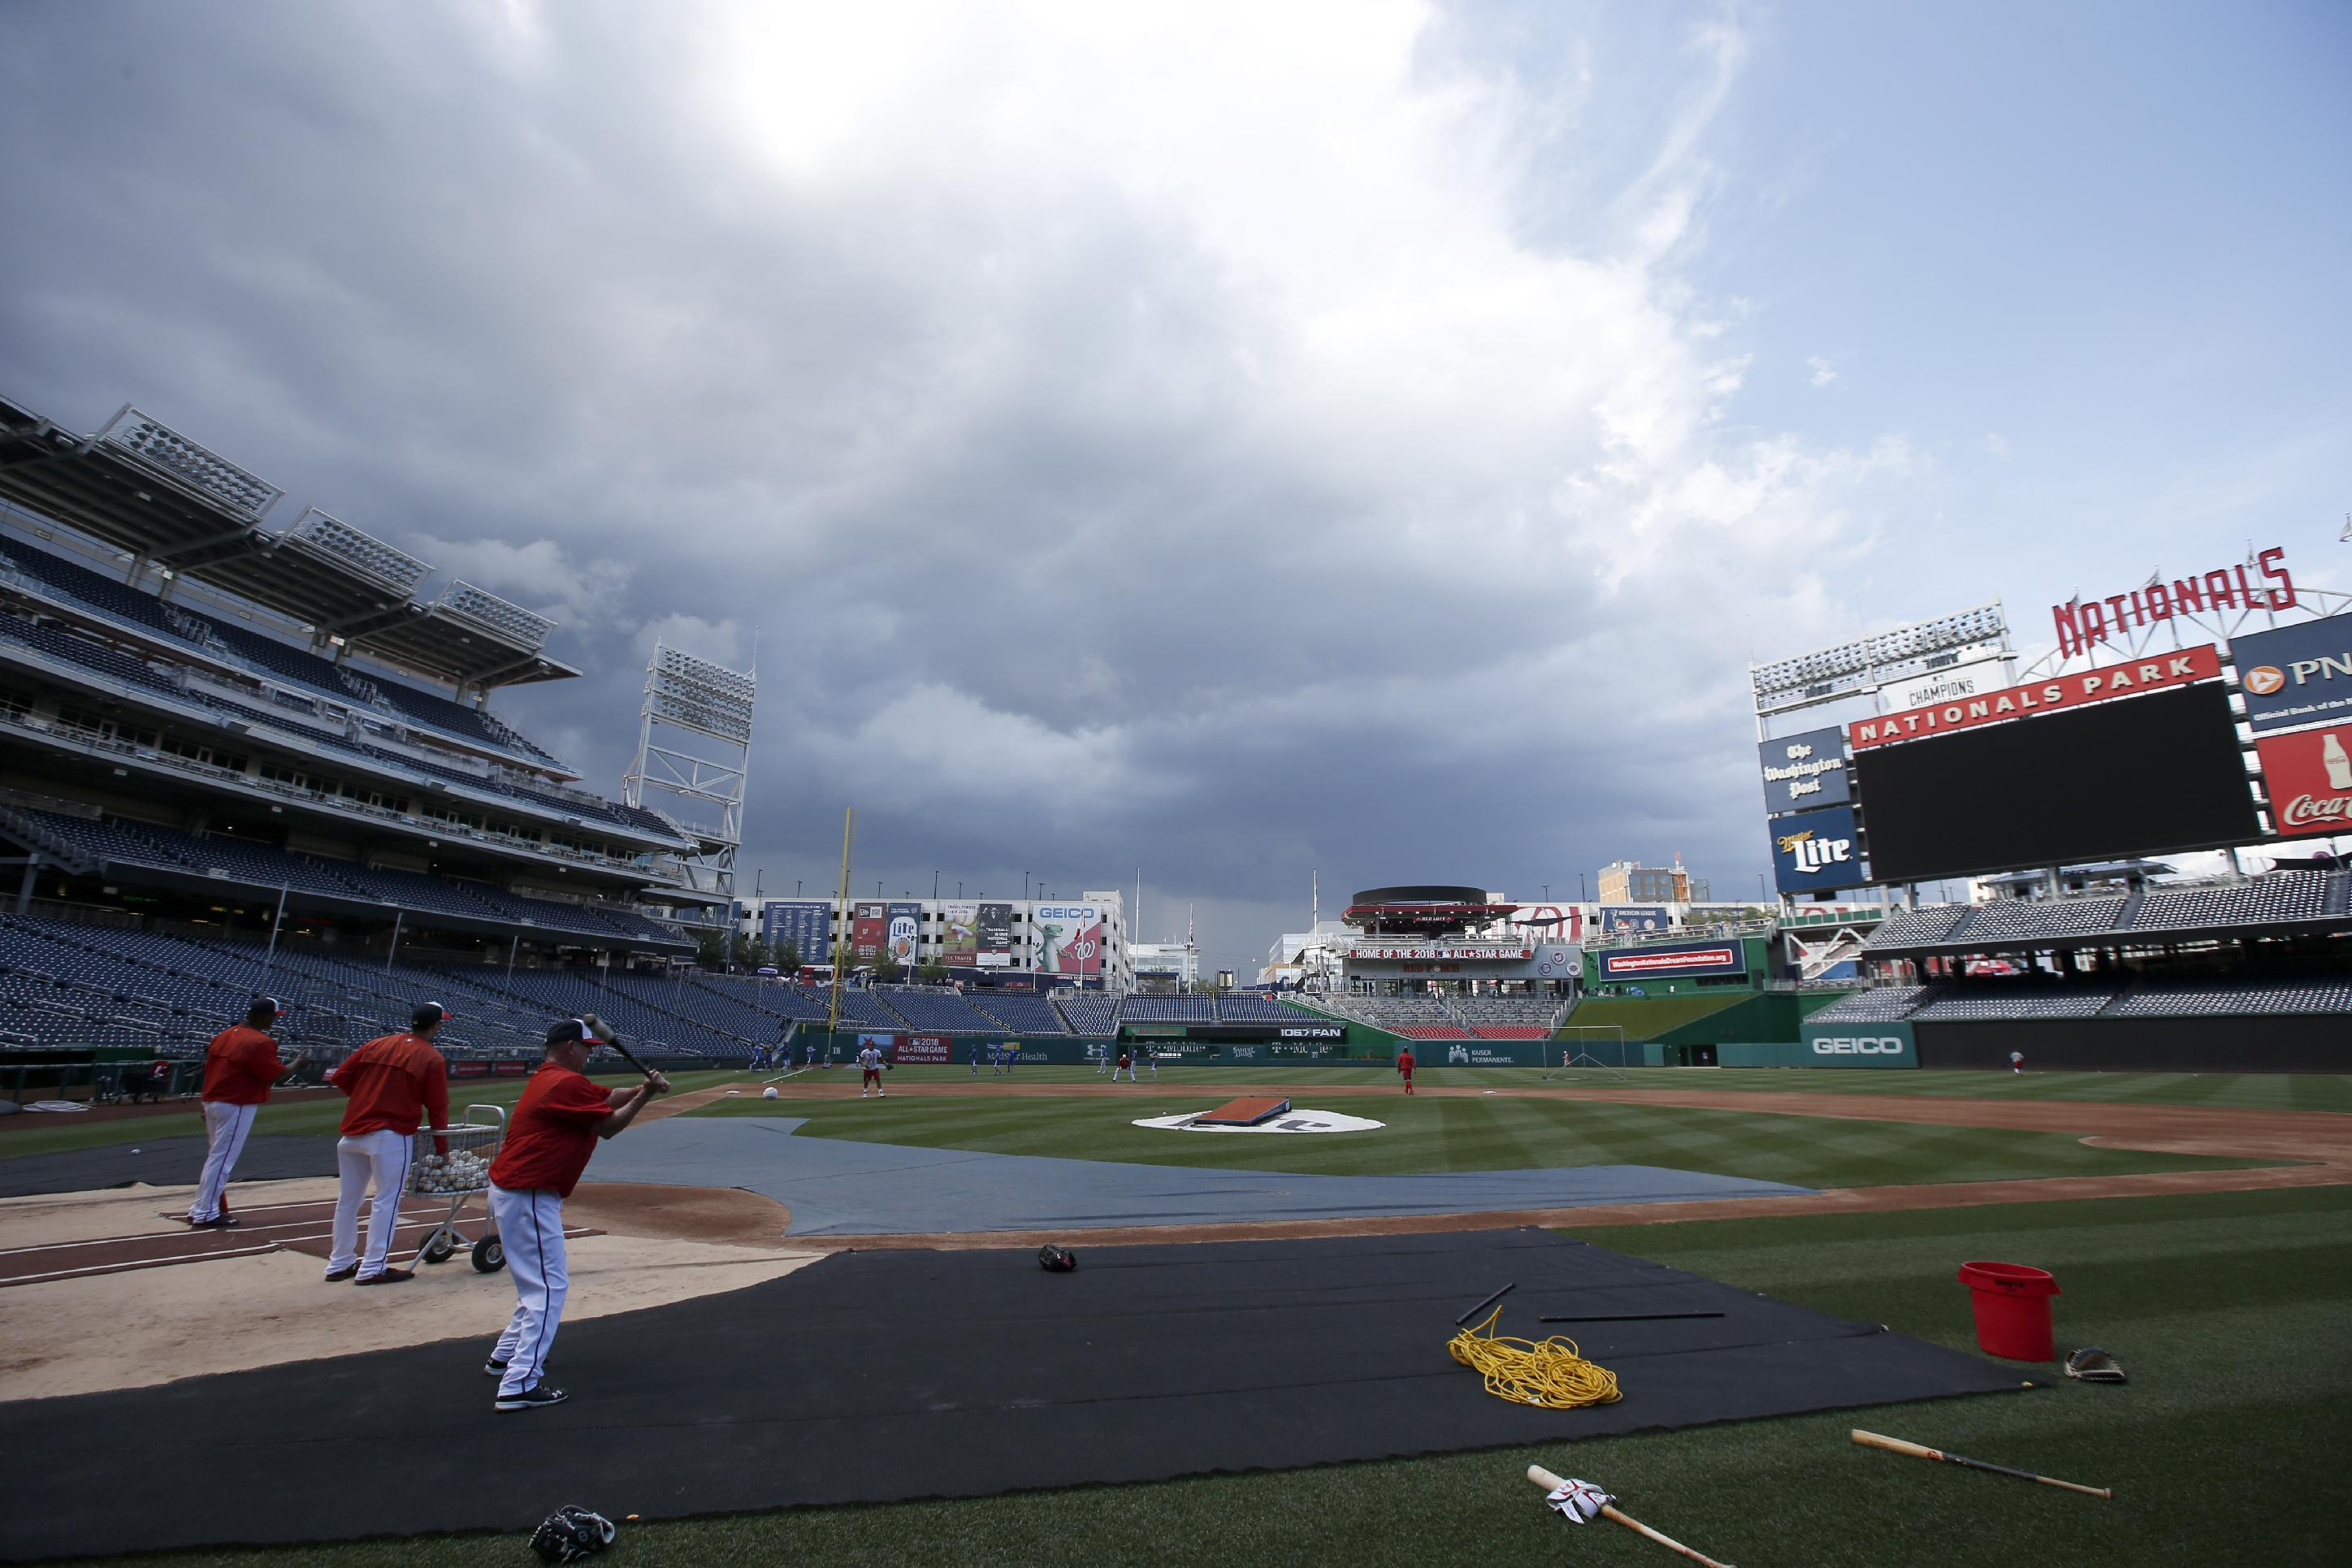 Blue Jays-Nationals postponed, so is Bautista's return to OF